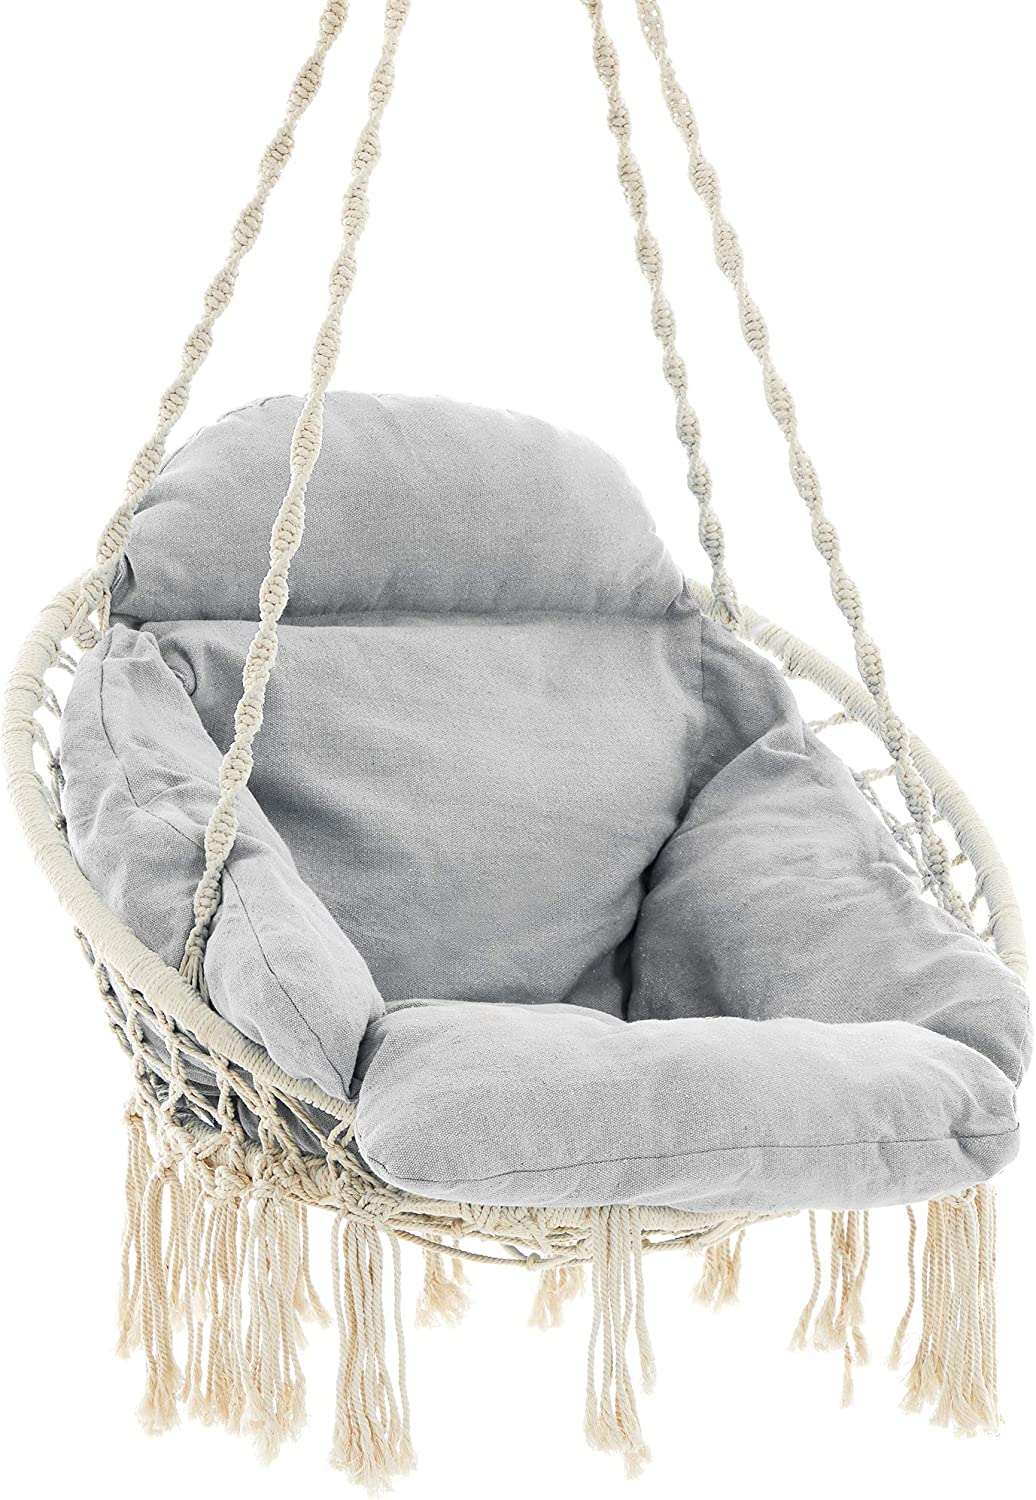 SONGMICS Hanging Chair, Hammock Chair with Large, Thick Cushion, Swing Chair, Holds up to 264 lb, for Terrace, Balcony, Garden, Living Room, Scandinavian, Shabby Chic, Cloud White and Gray UGDC042G01